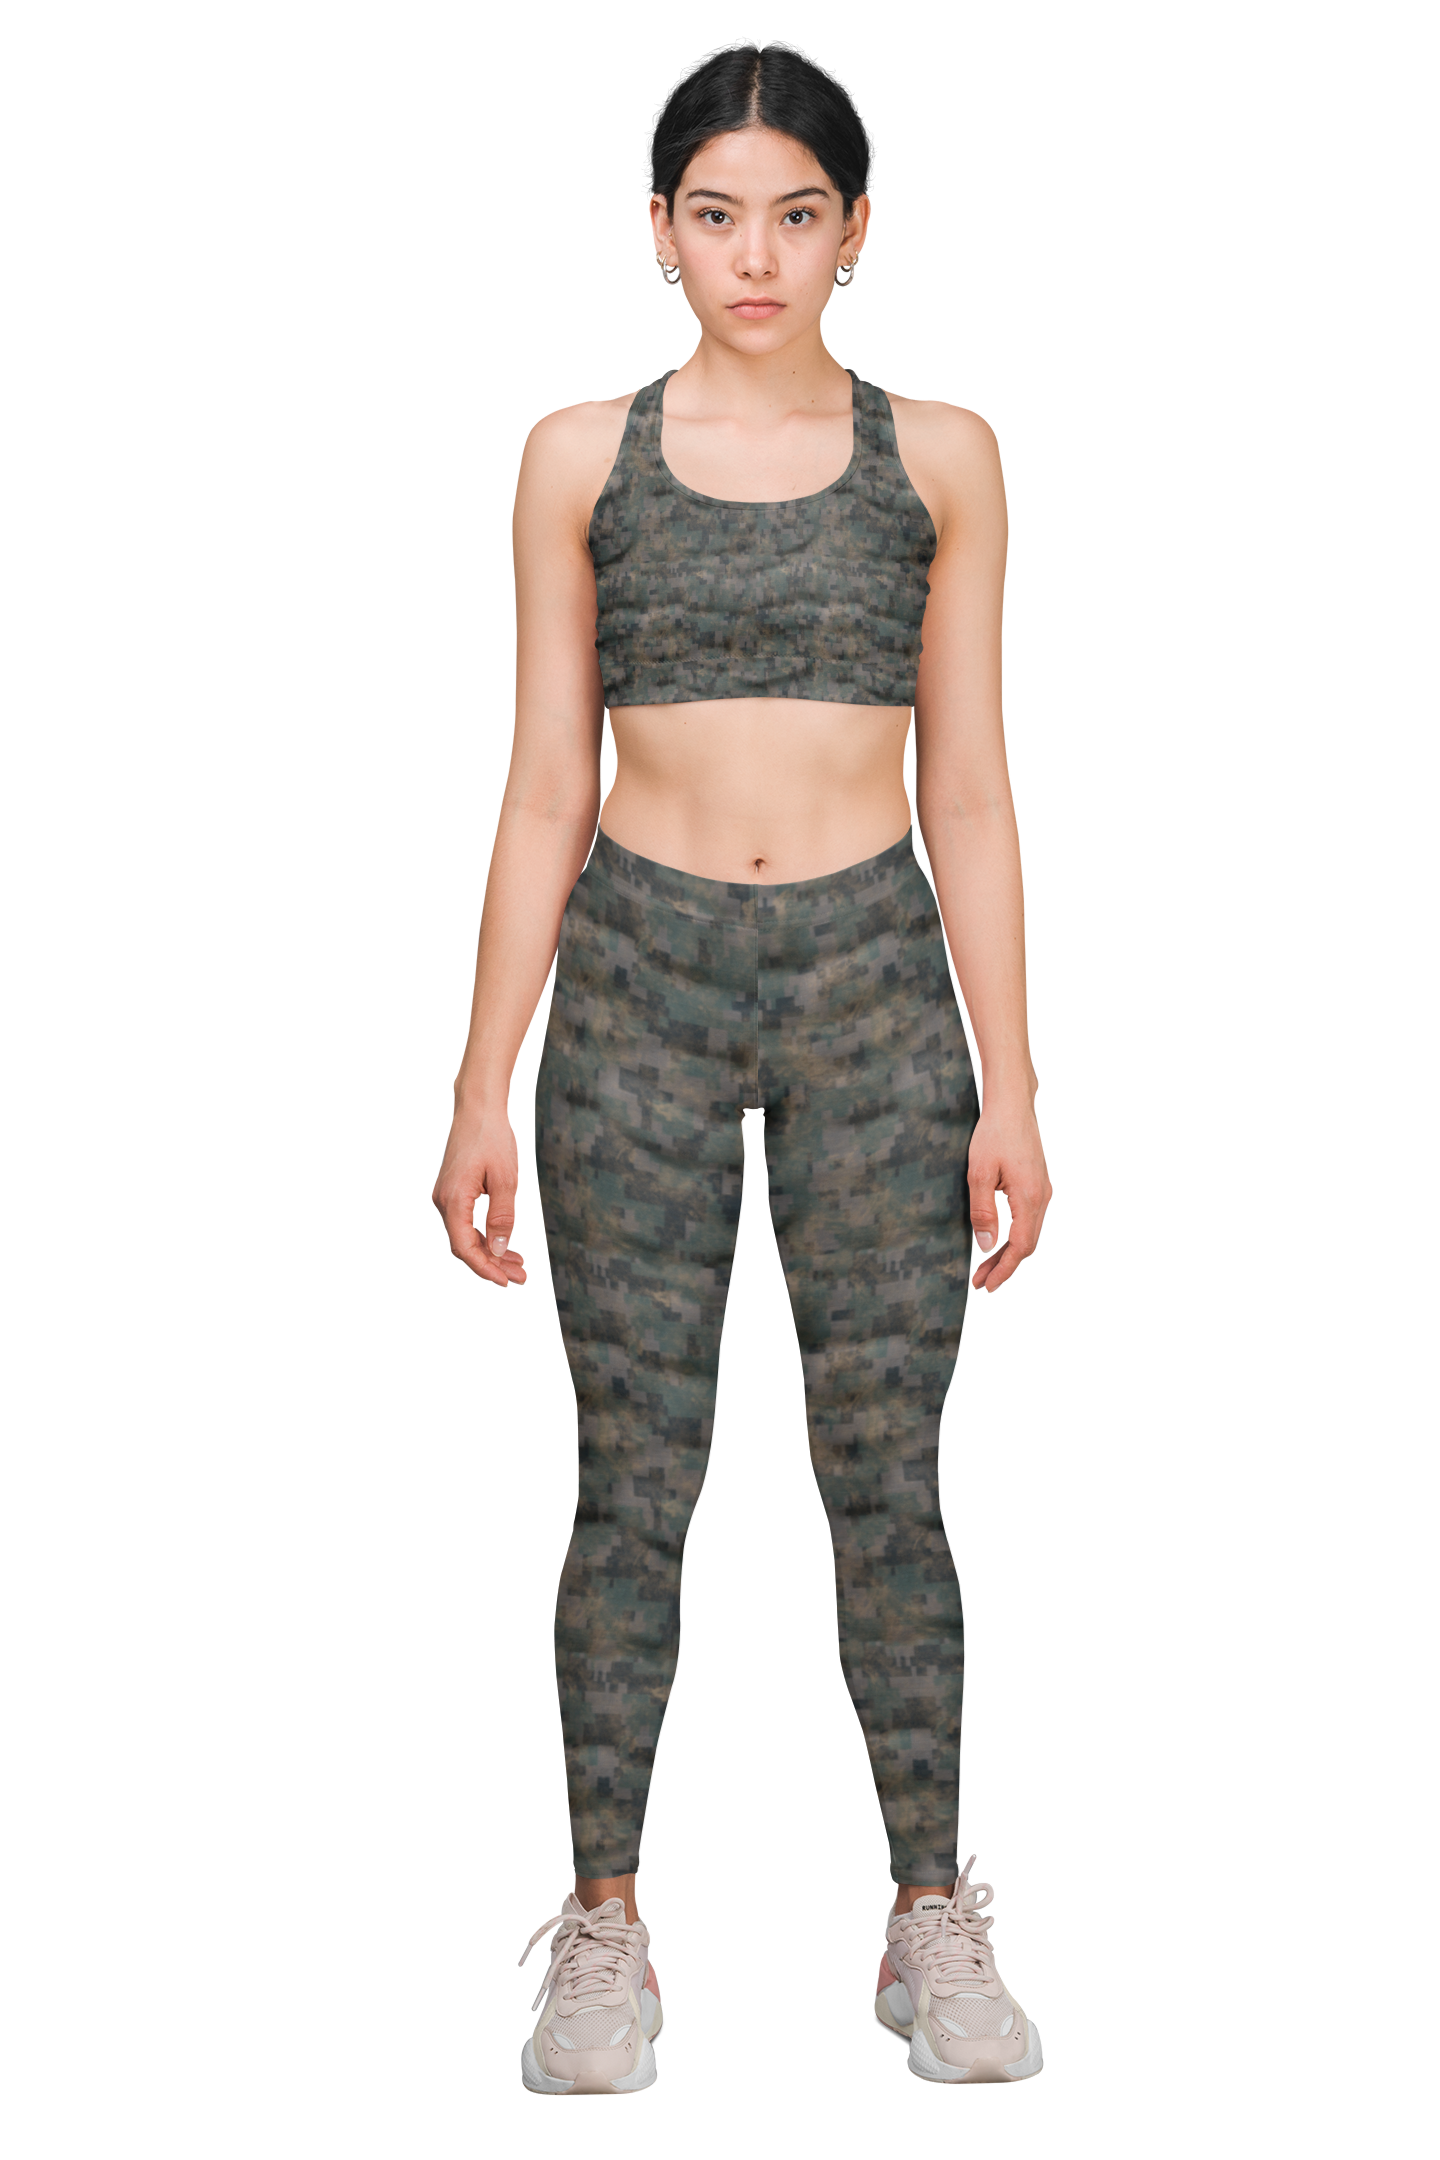 CamoFlossing | Mixed green digital camo with sand abrasions - The Ripped Effect